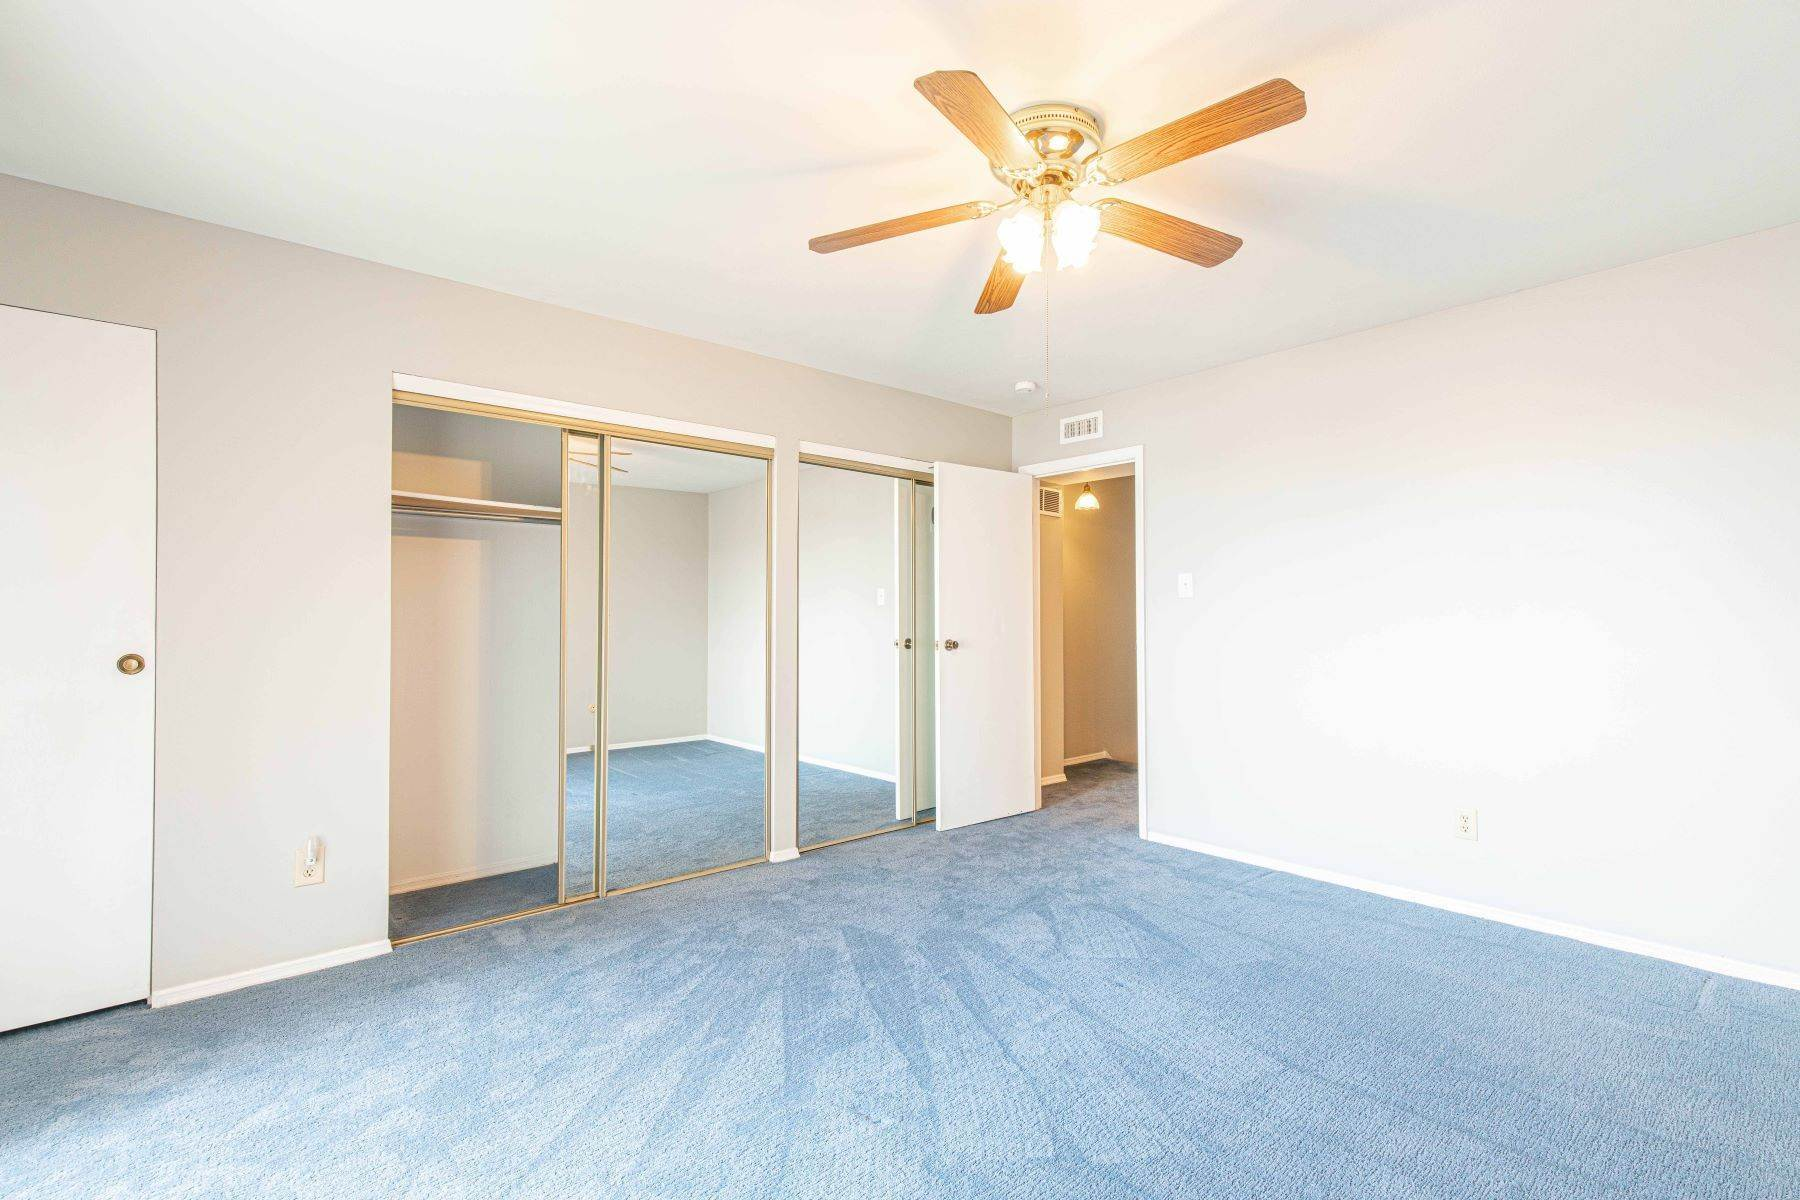 19. Condominiums for Sale at Great Riverview St. Louis City Condo 4554 Ohio Avenue St. Louis, Missouri 63111 United States